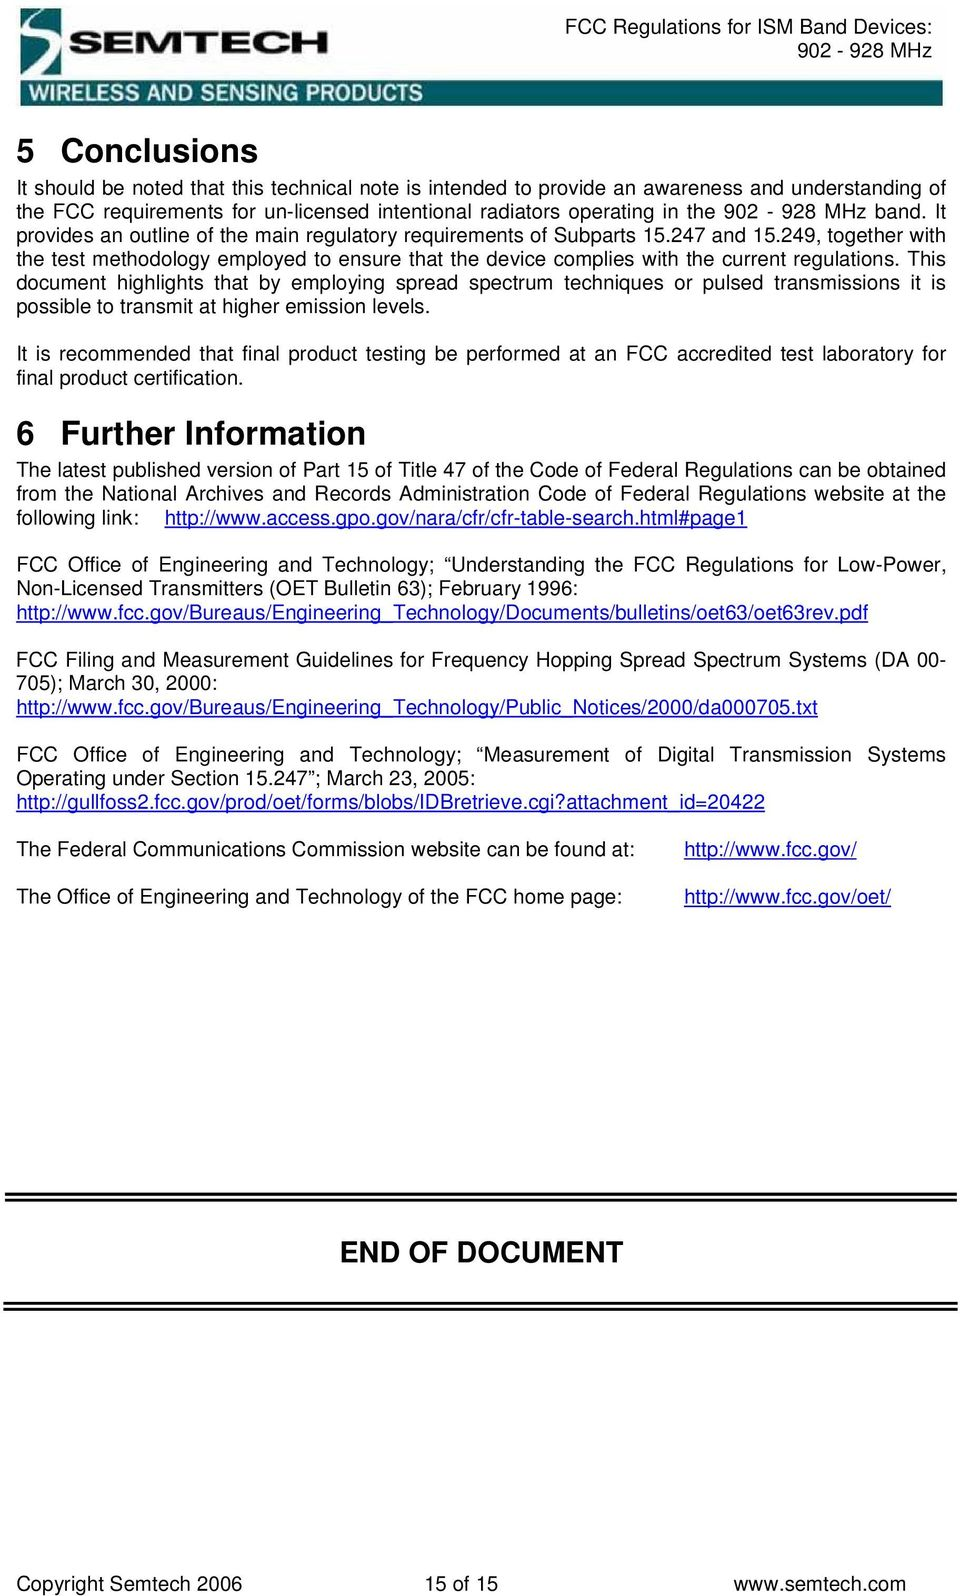 This document highlights that by employing spread spectrum techniques or pulsed transmissions it is possible to transmit at higher emission levels.